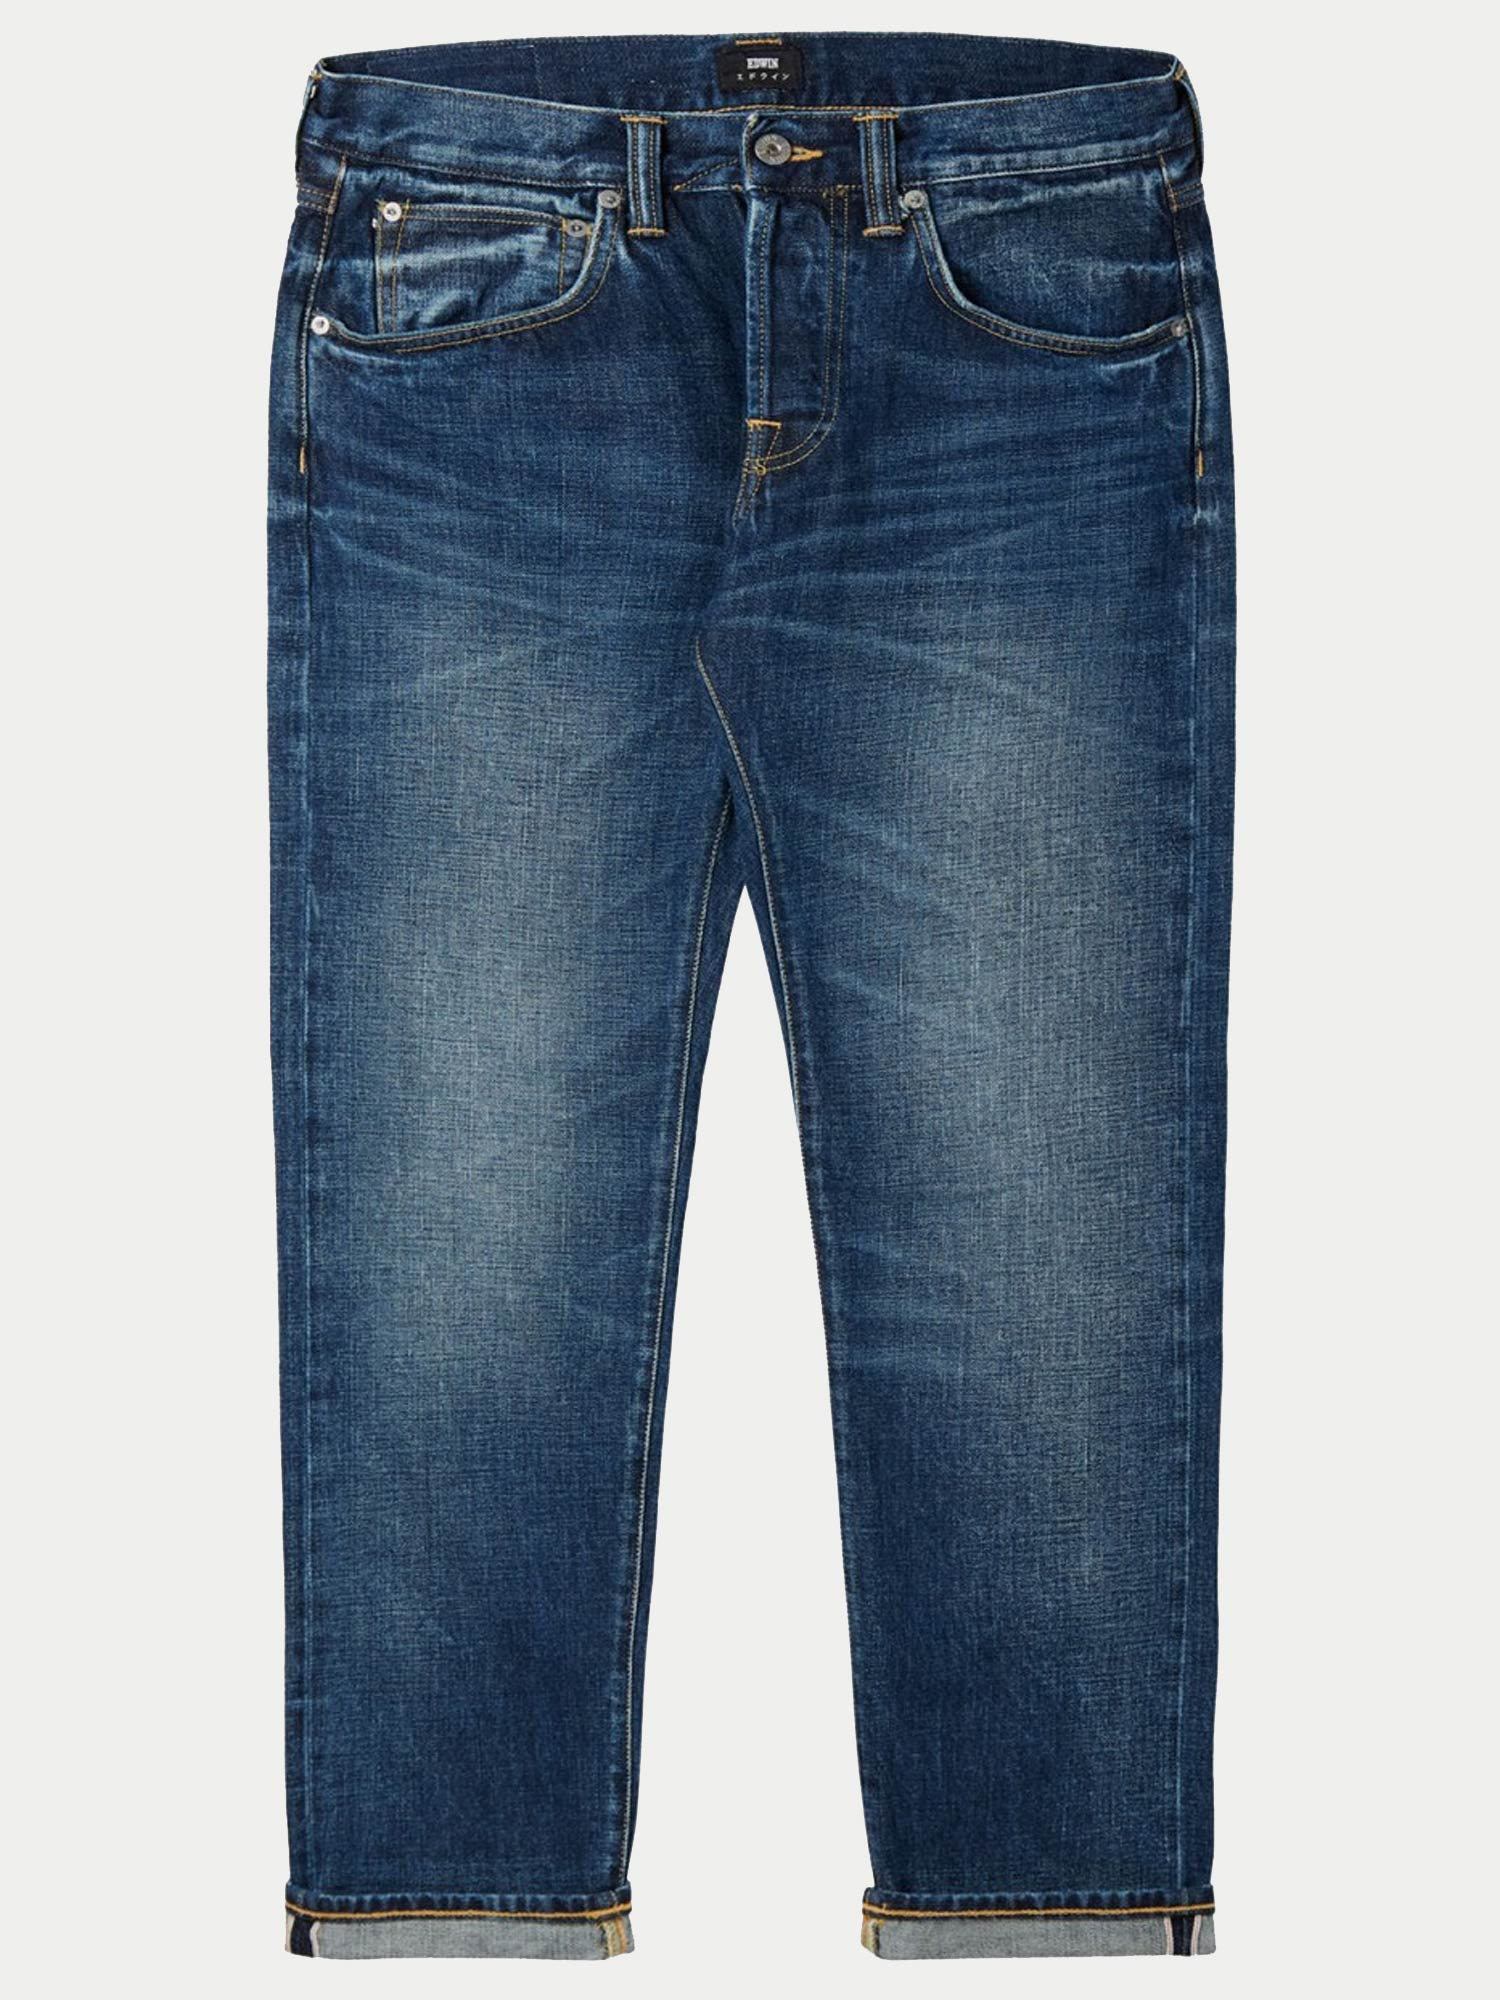 Edwin ED-55 14oz Red Selvage Jeans (Contrast Clean Wash)